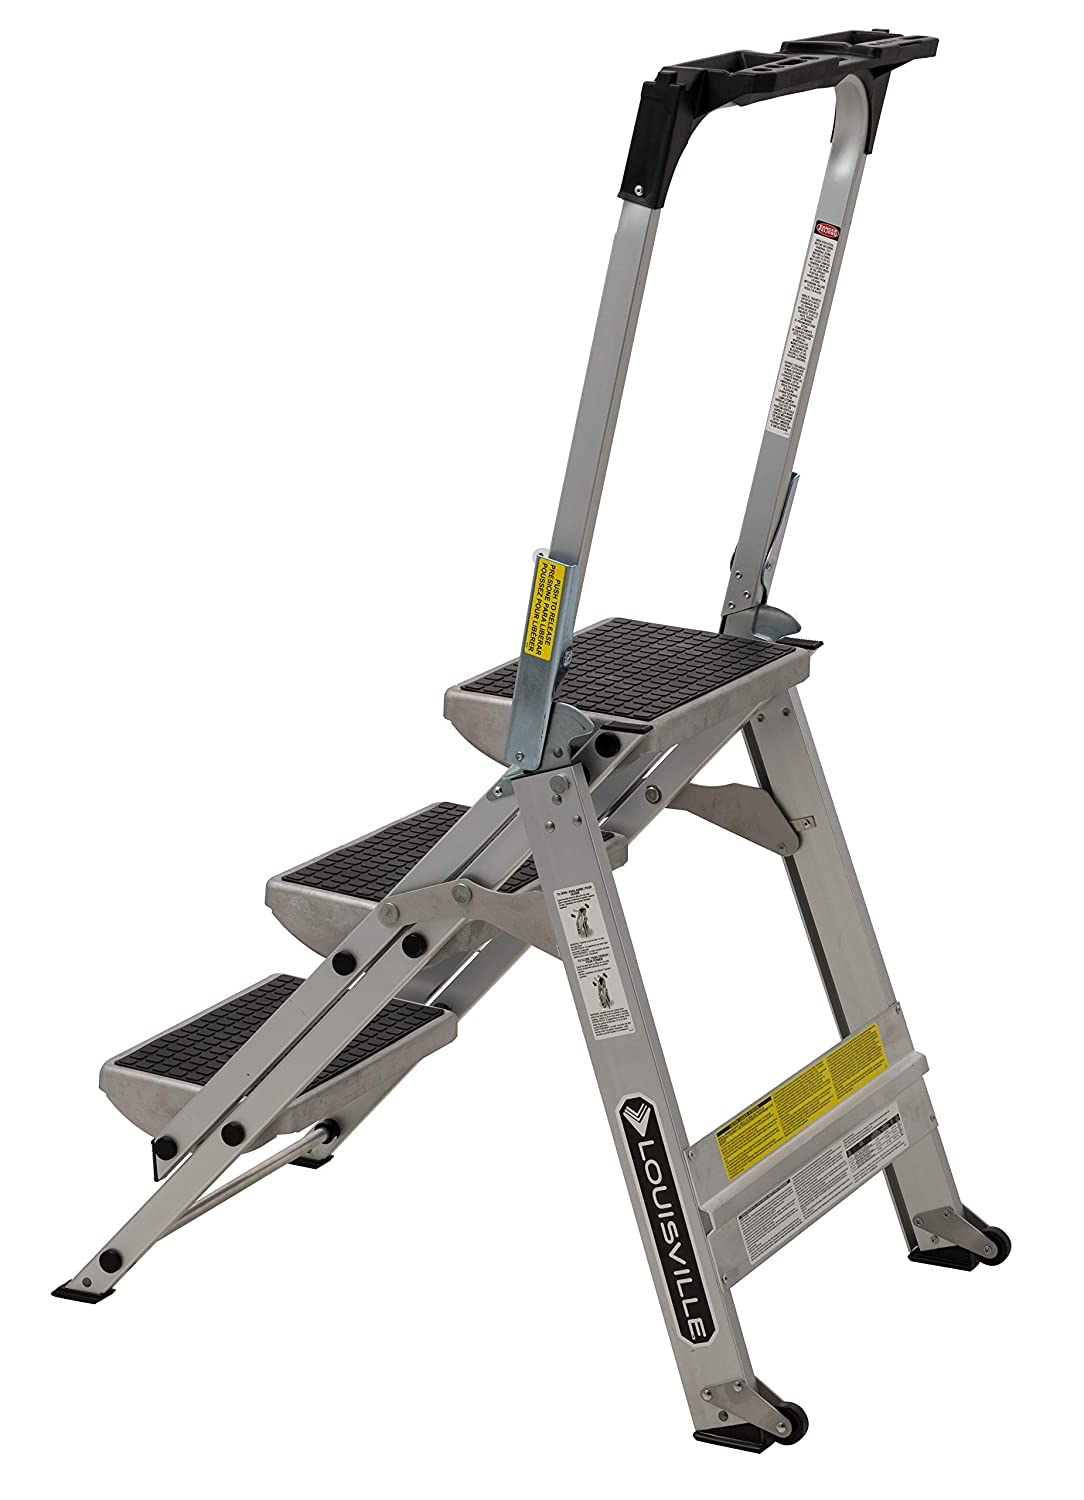 Groovy Louisville Ladder 3 Foot Step Stool 300 Pound Capacity L Pabps2019 Chair Design Images Pabps2019Com